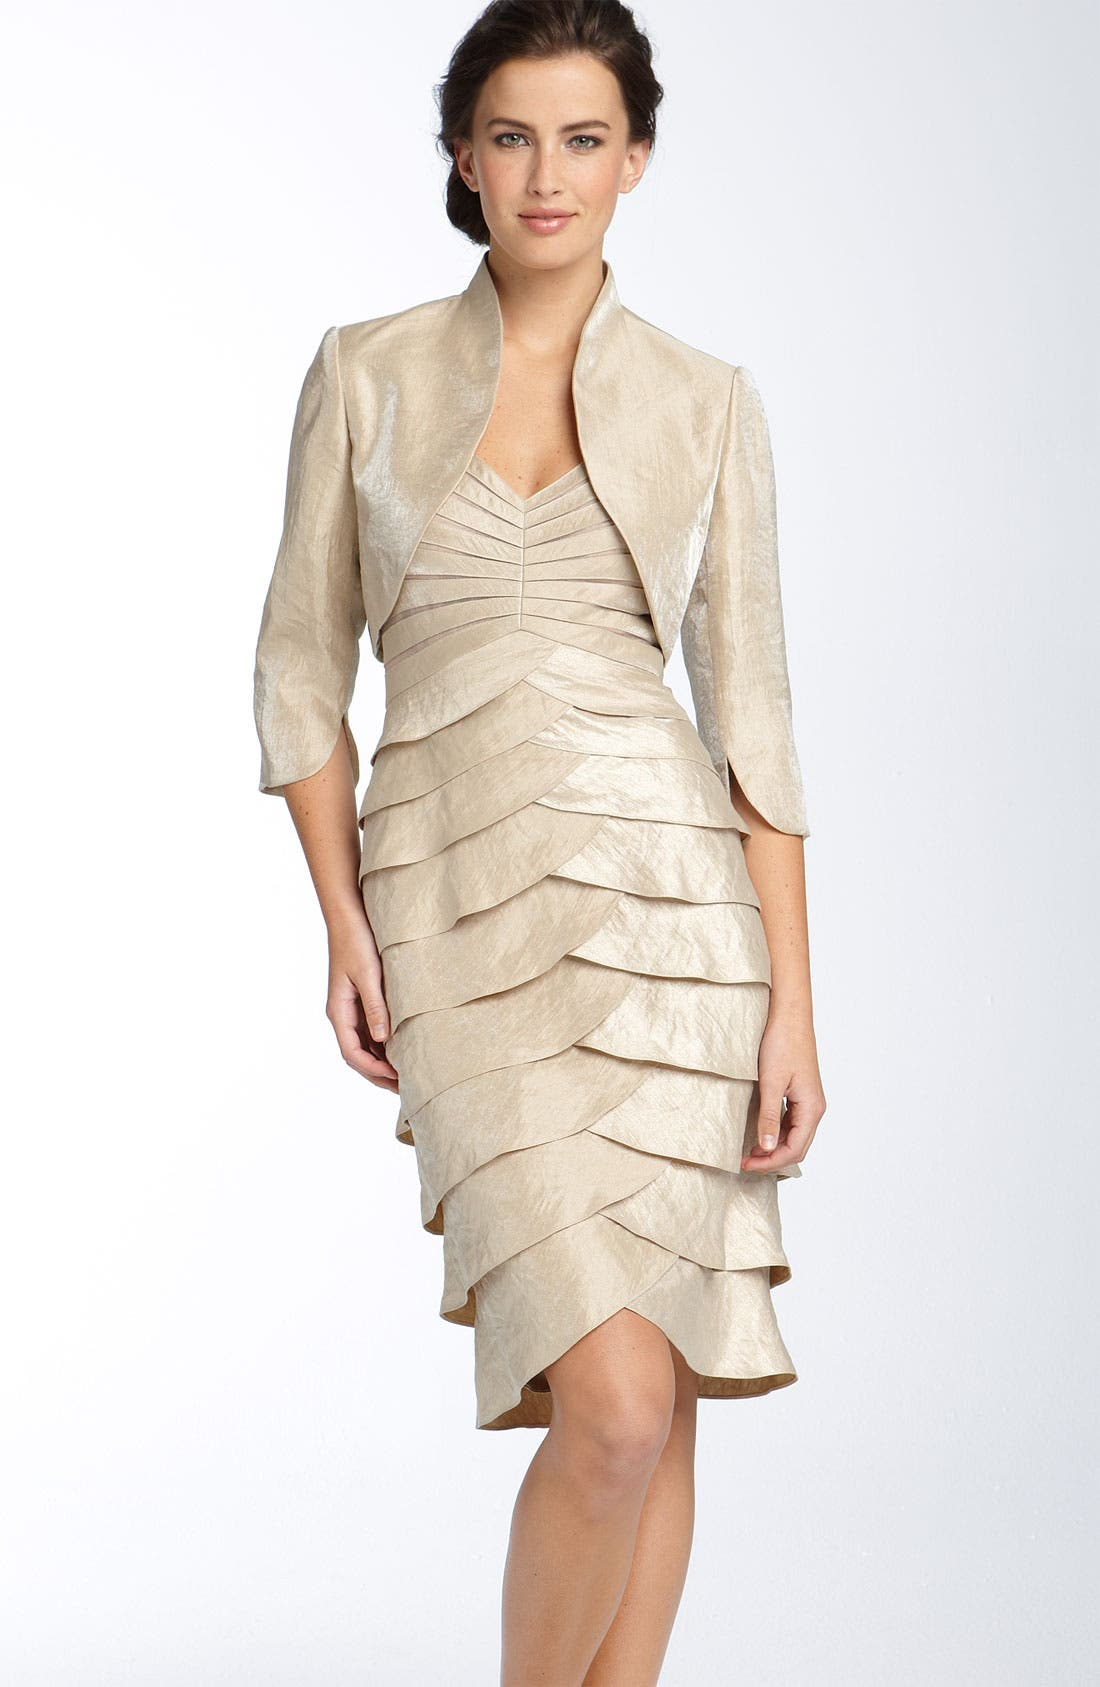 Alternate Image 1 Selected - Adrianna Papell Tiered Hammered Satin Sheath Dress & Bolero (Regular & Petite)